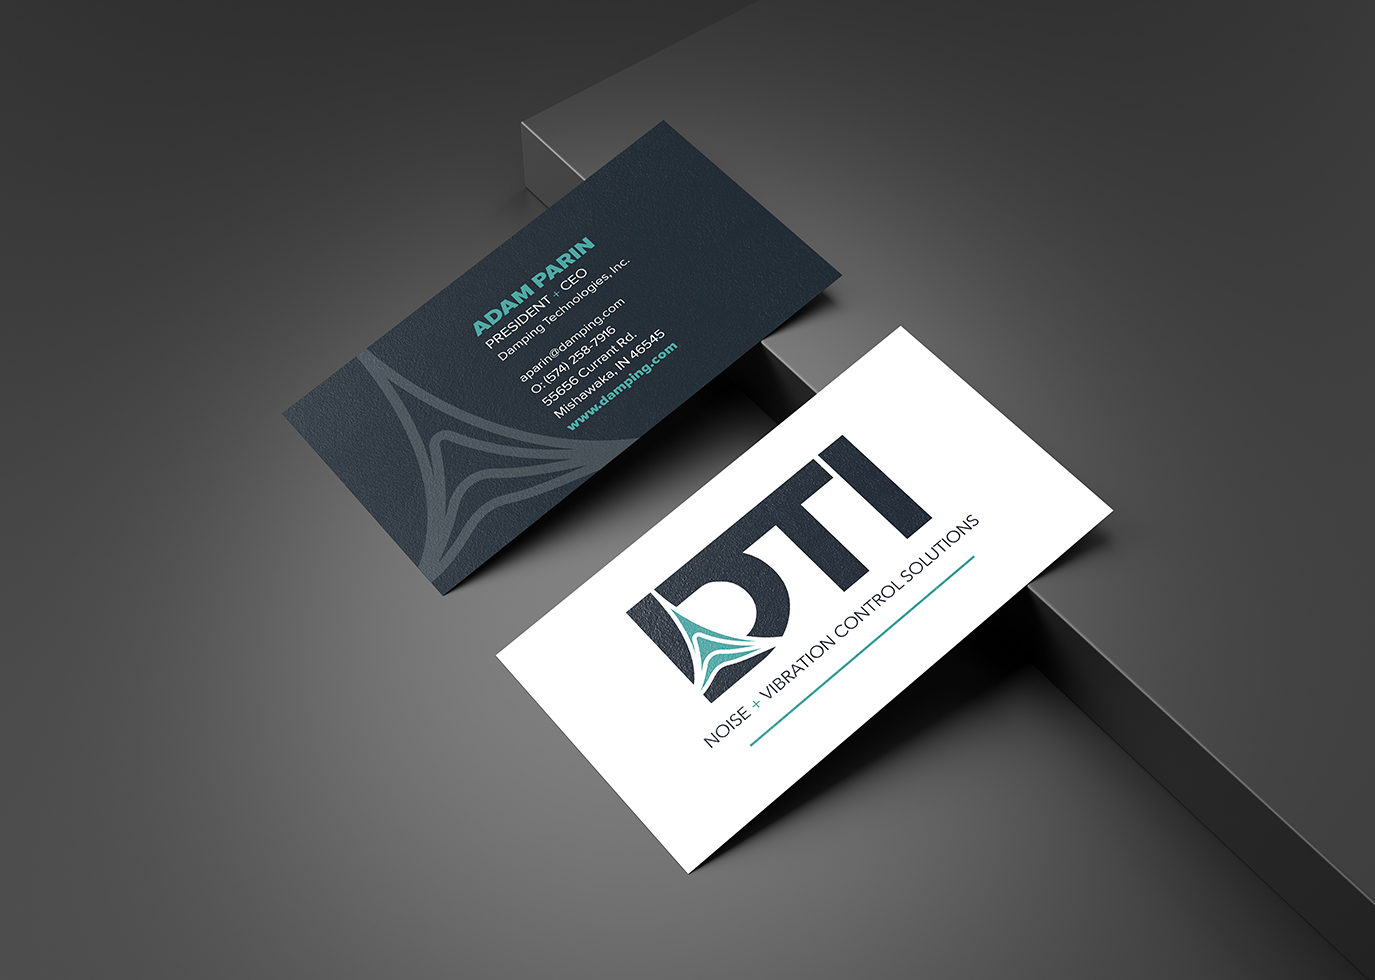 DTI business card front and back